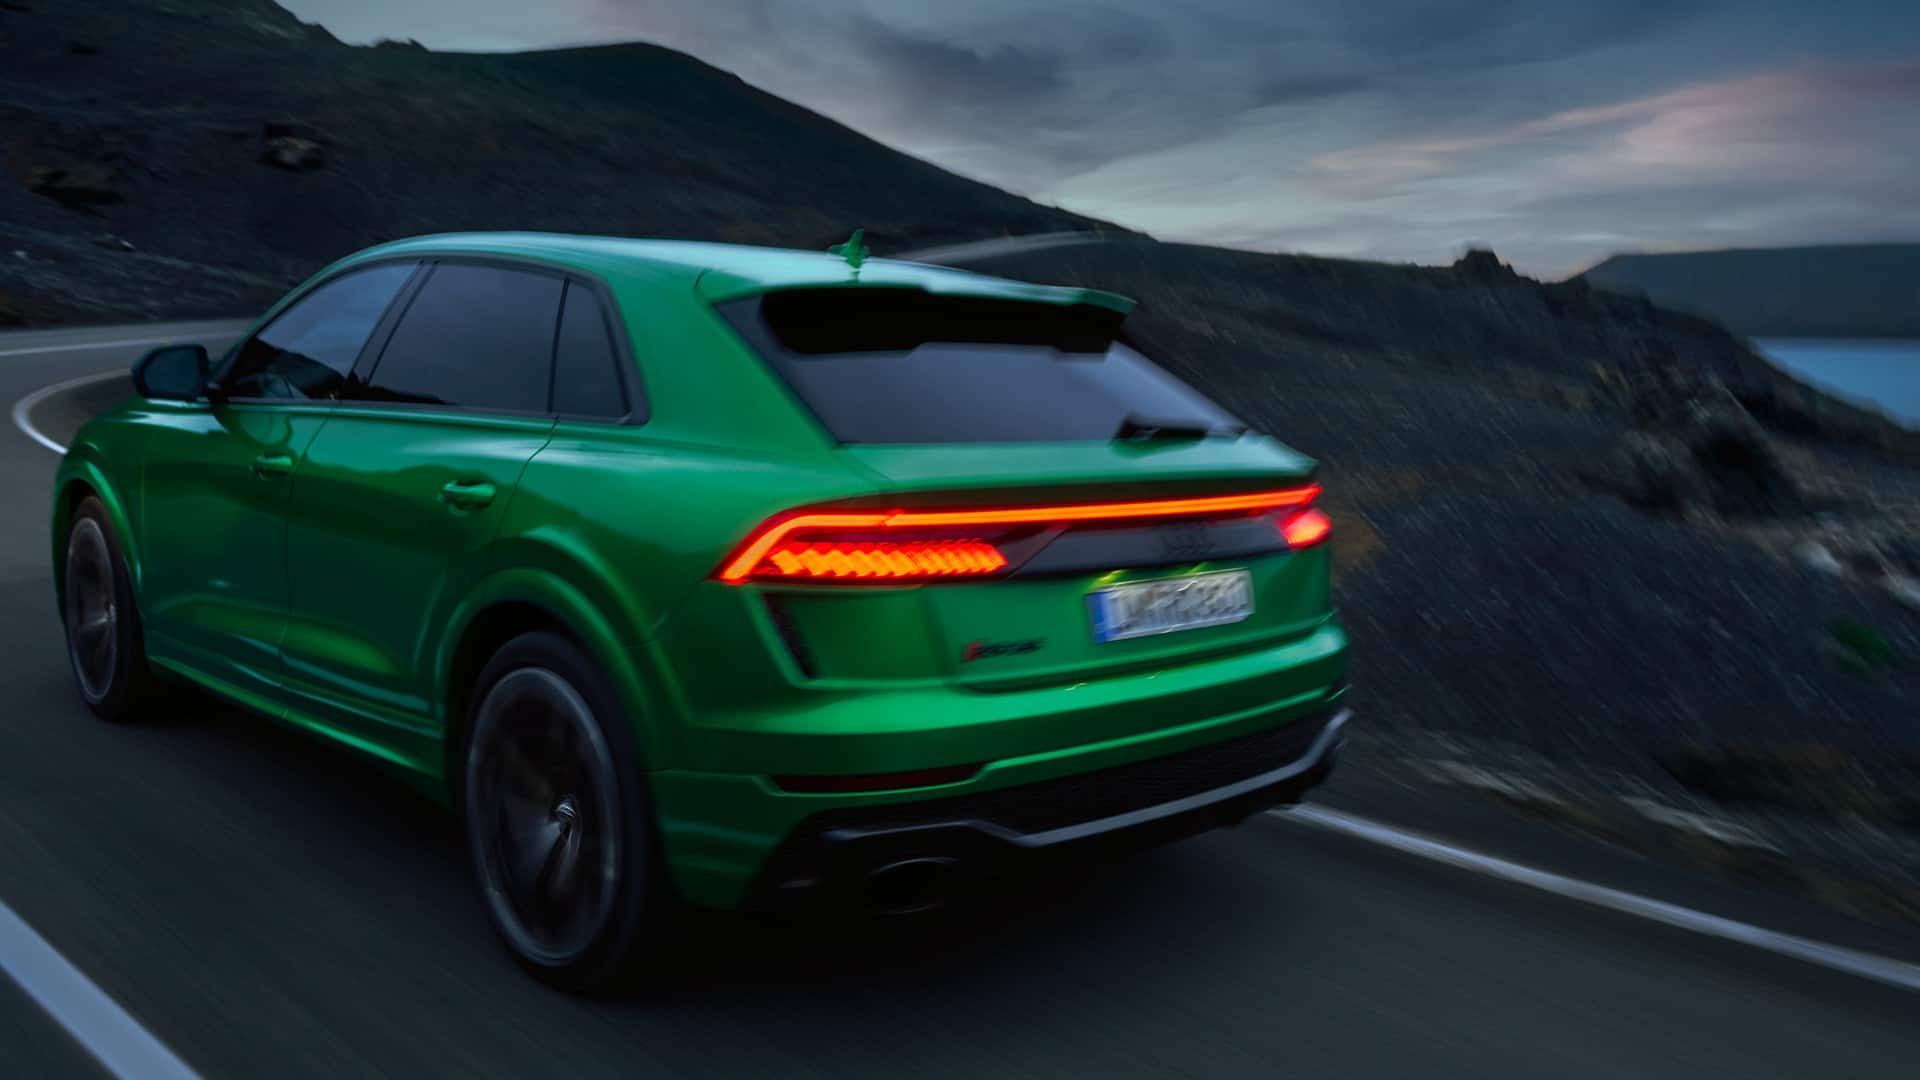 The Audi RS Q8 in dynamic pass-by